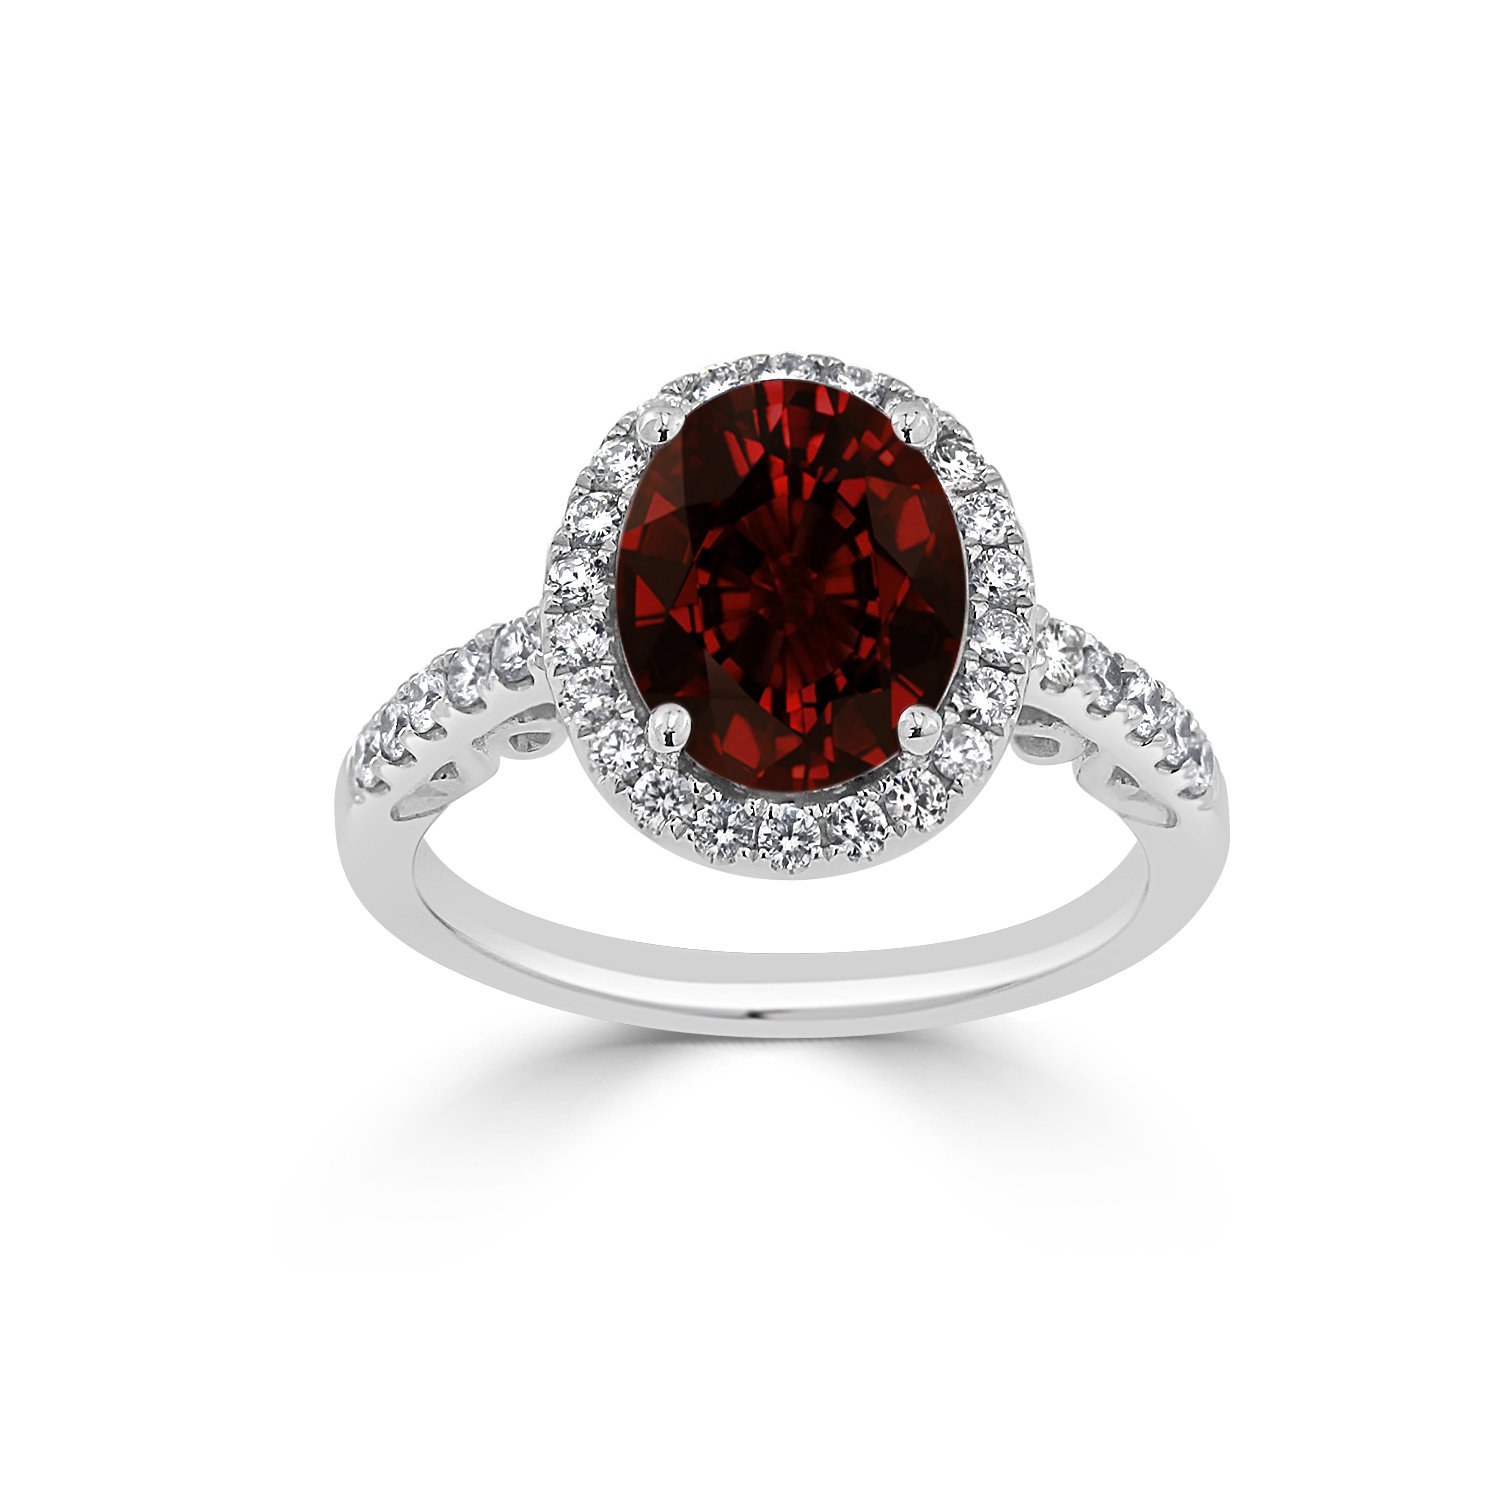 Halo Garnet Diamond Ring in 14K White Gold with 2.90 carat Oval Garnet